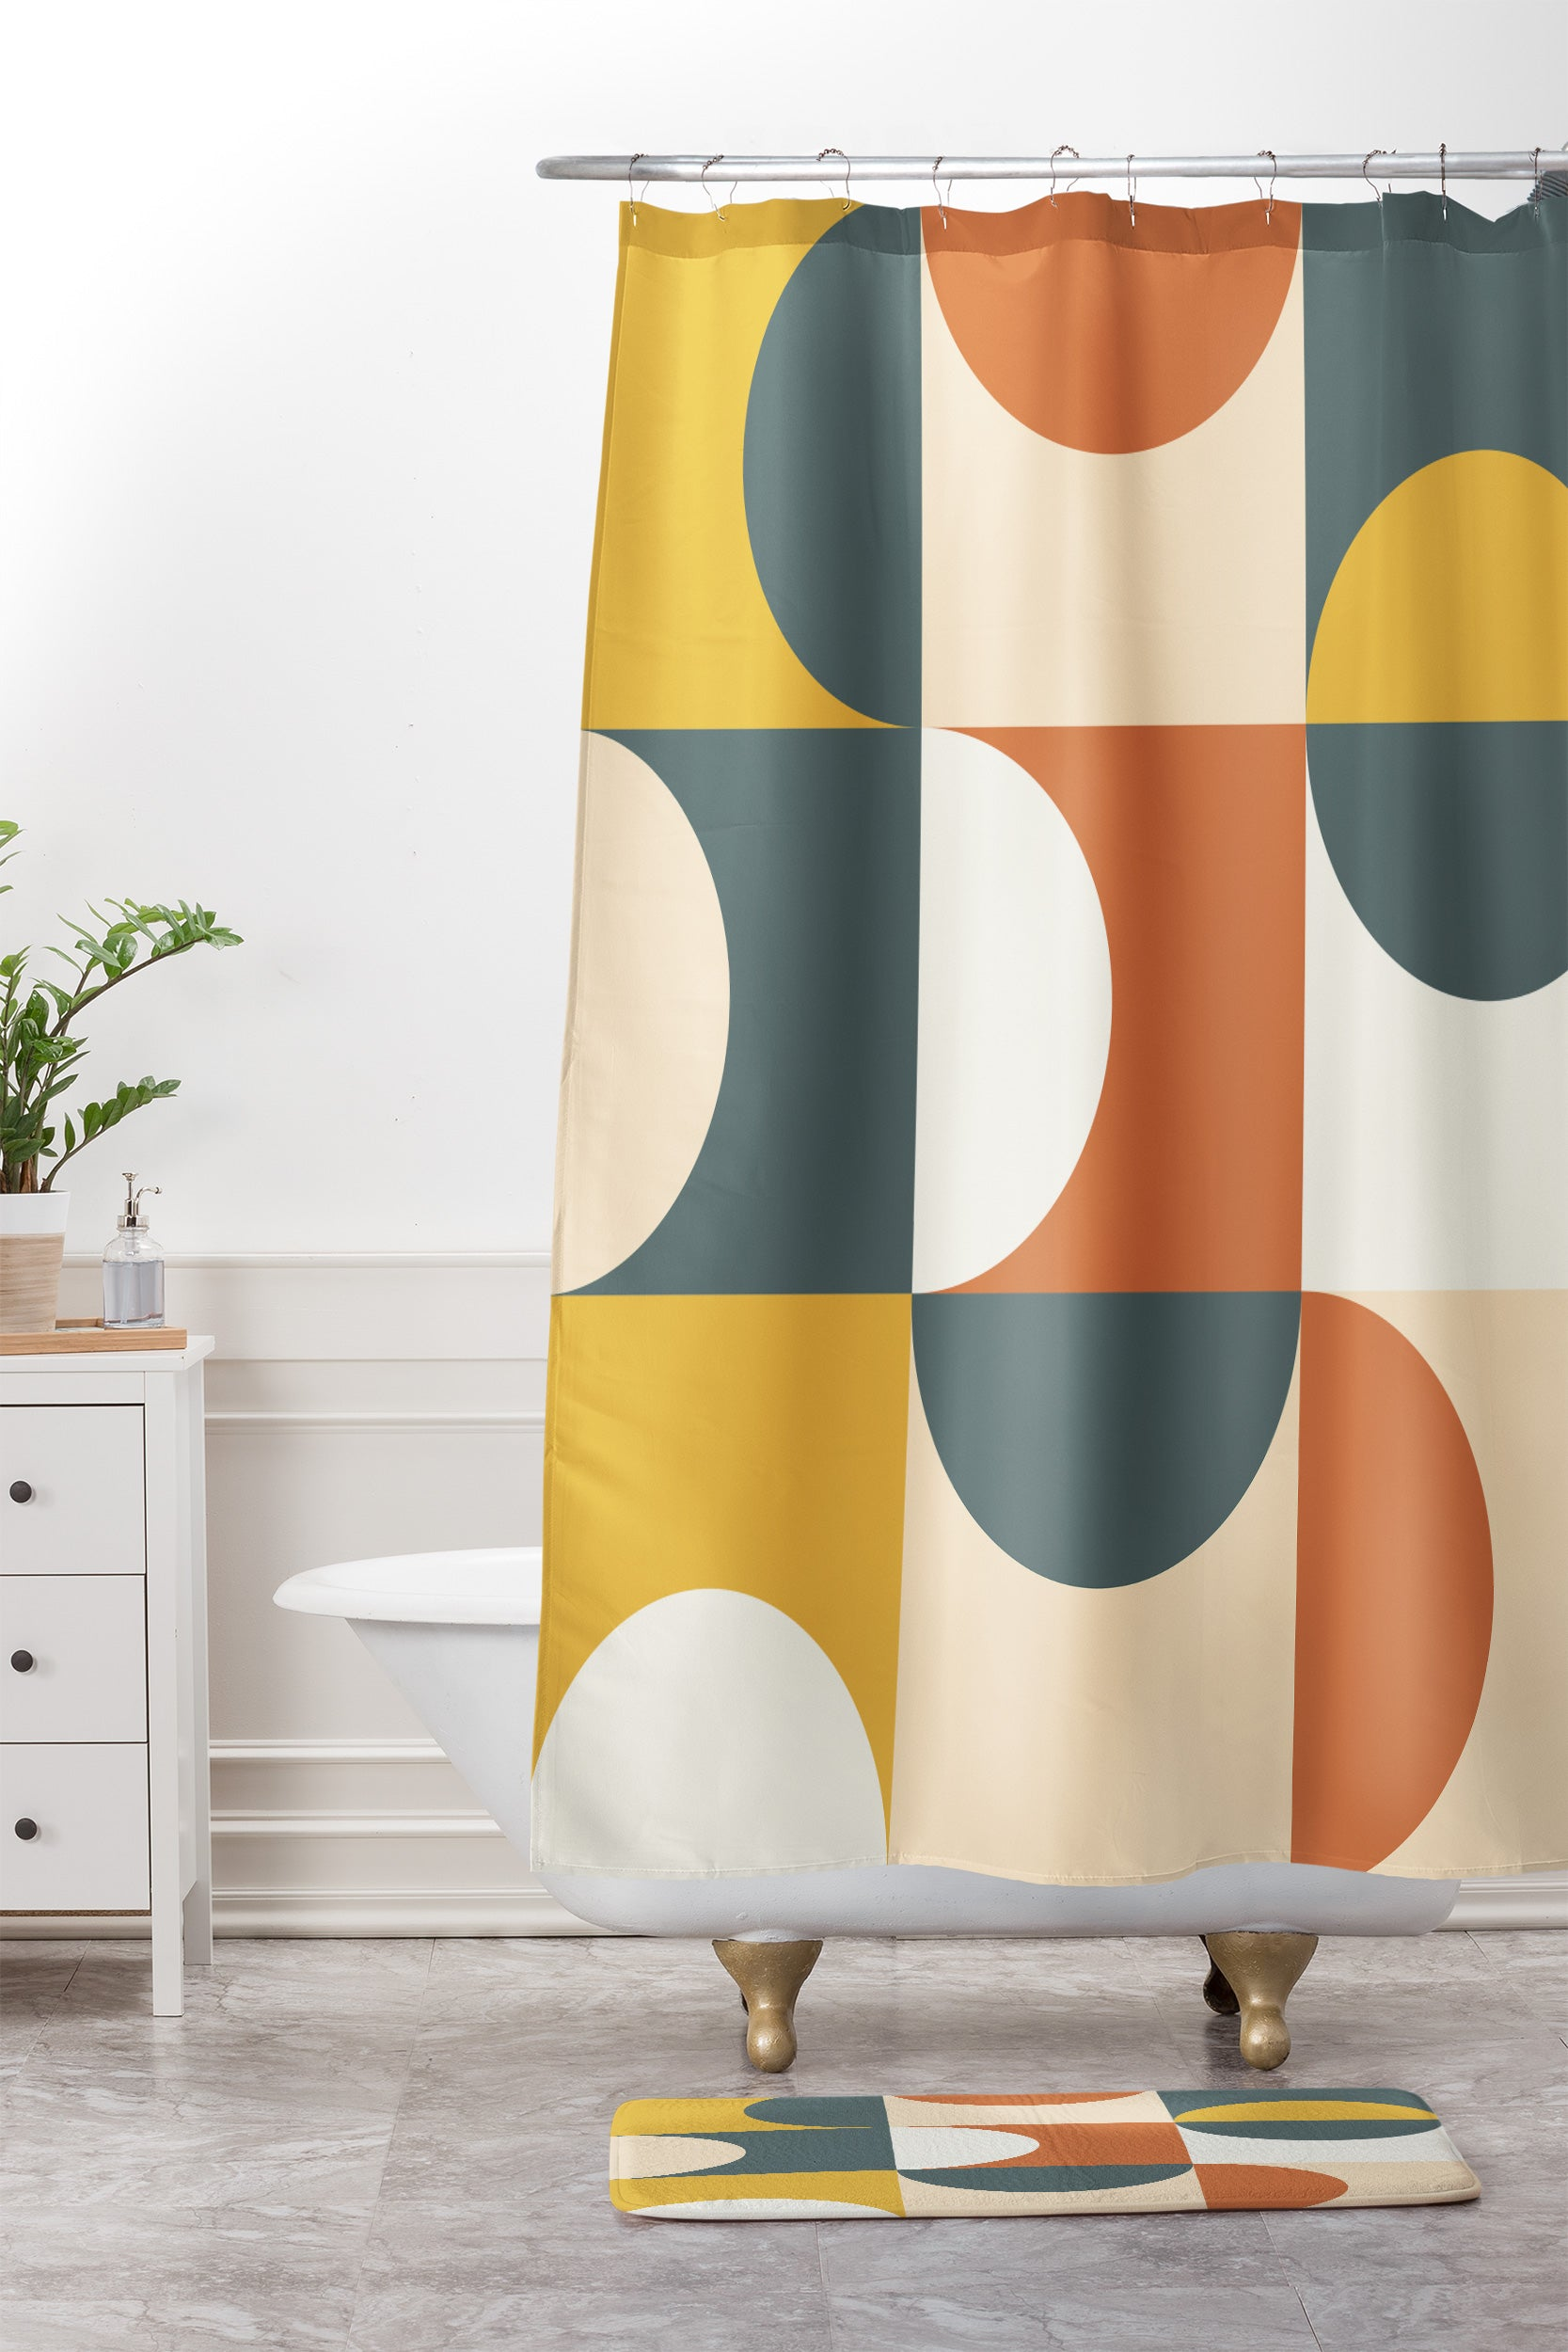 Image of: Mid Century Modern Geometric 23 Shower Curtain And Mat The Old Art Studio